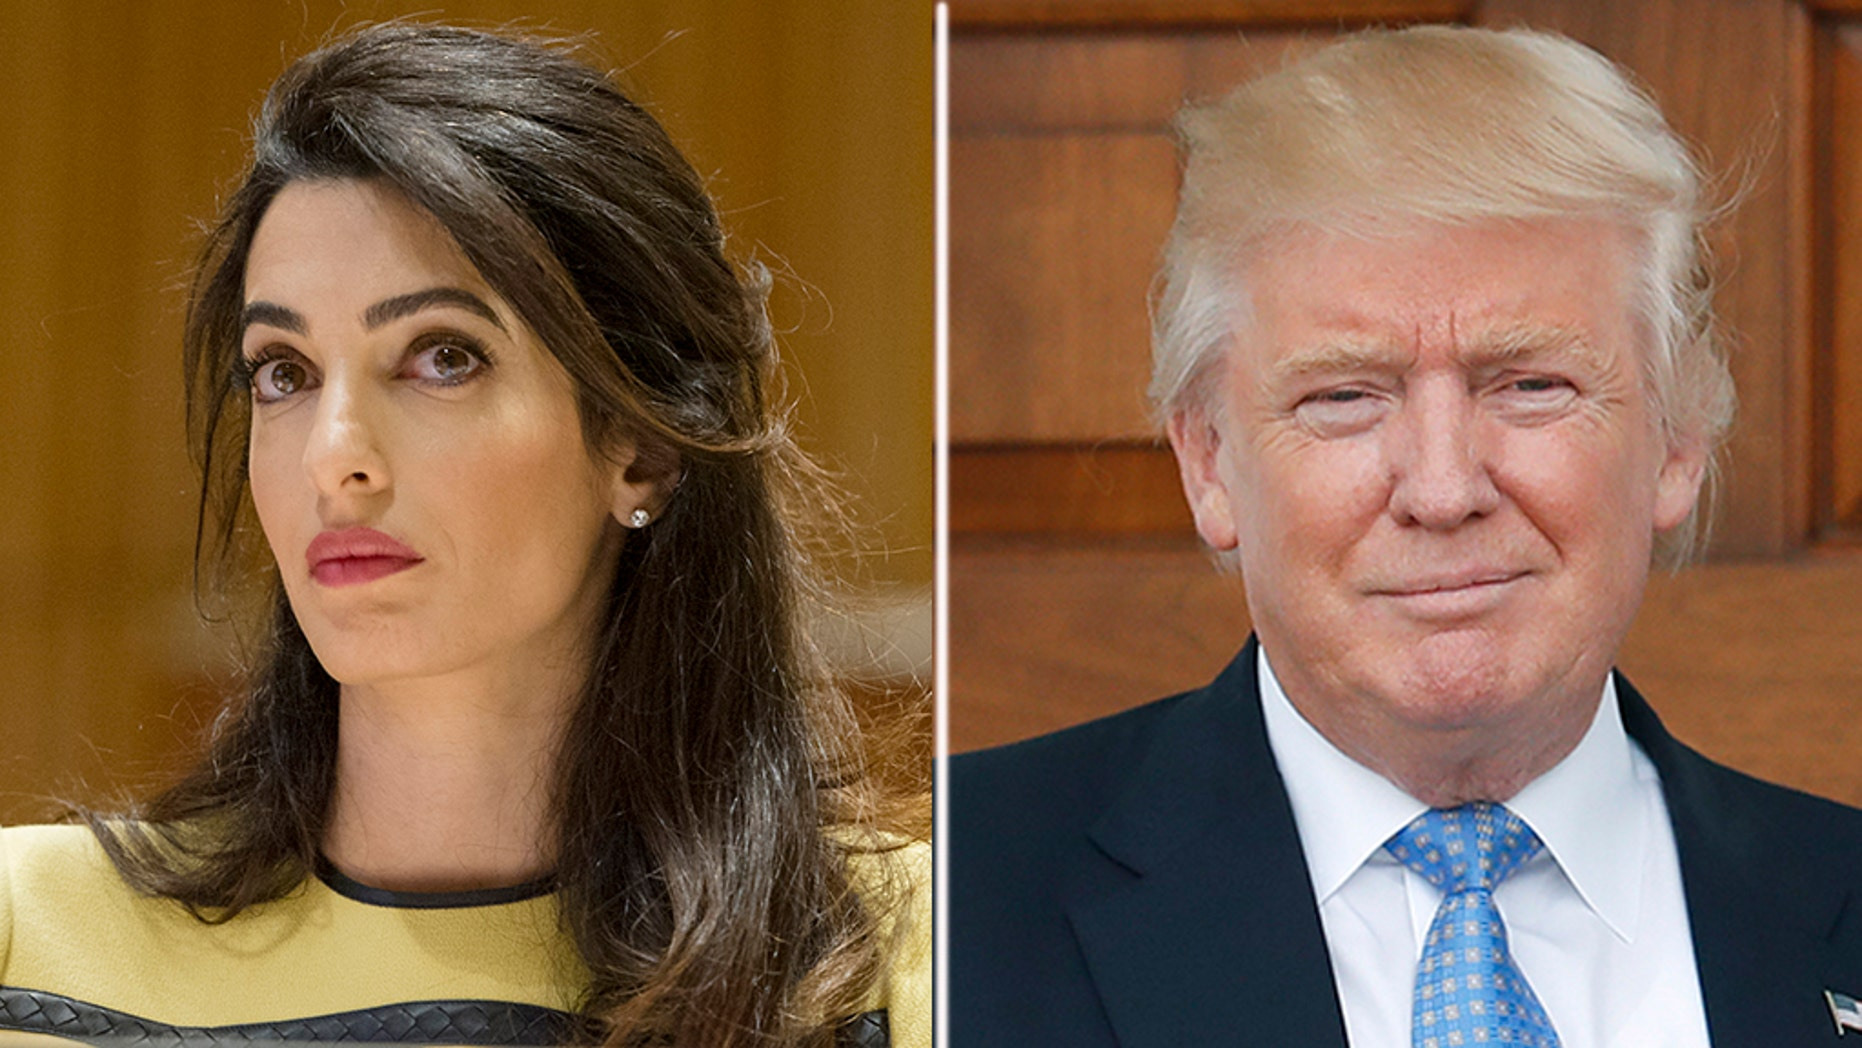 Amal Clooney reportedly took aim at President Trump on Friday for his previous controversial remarks about Christine Blasey Ford, who accused now-Supreme Court Justice Brett Kavanaugh of sexual assault.